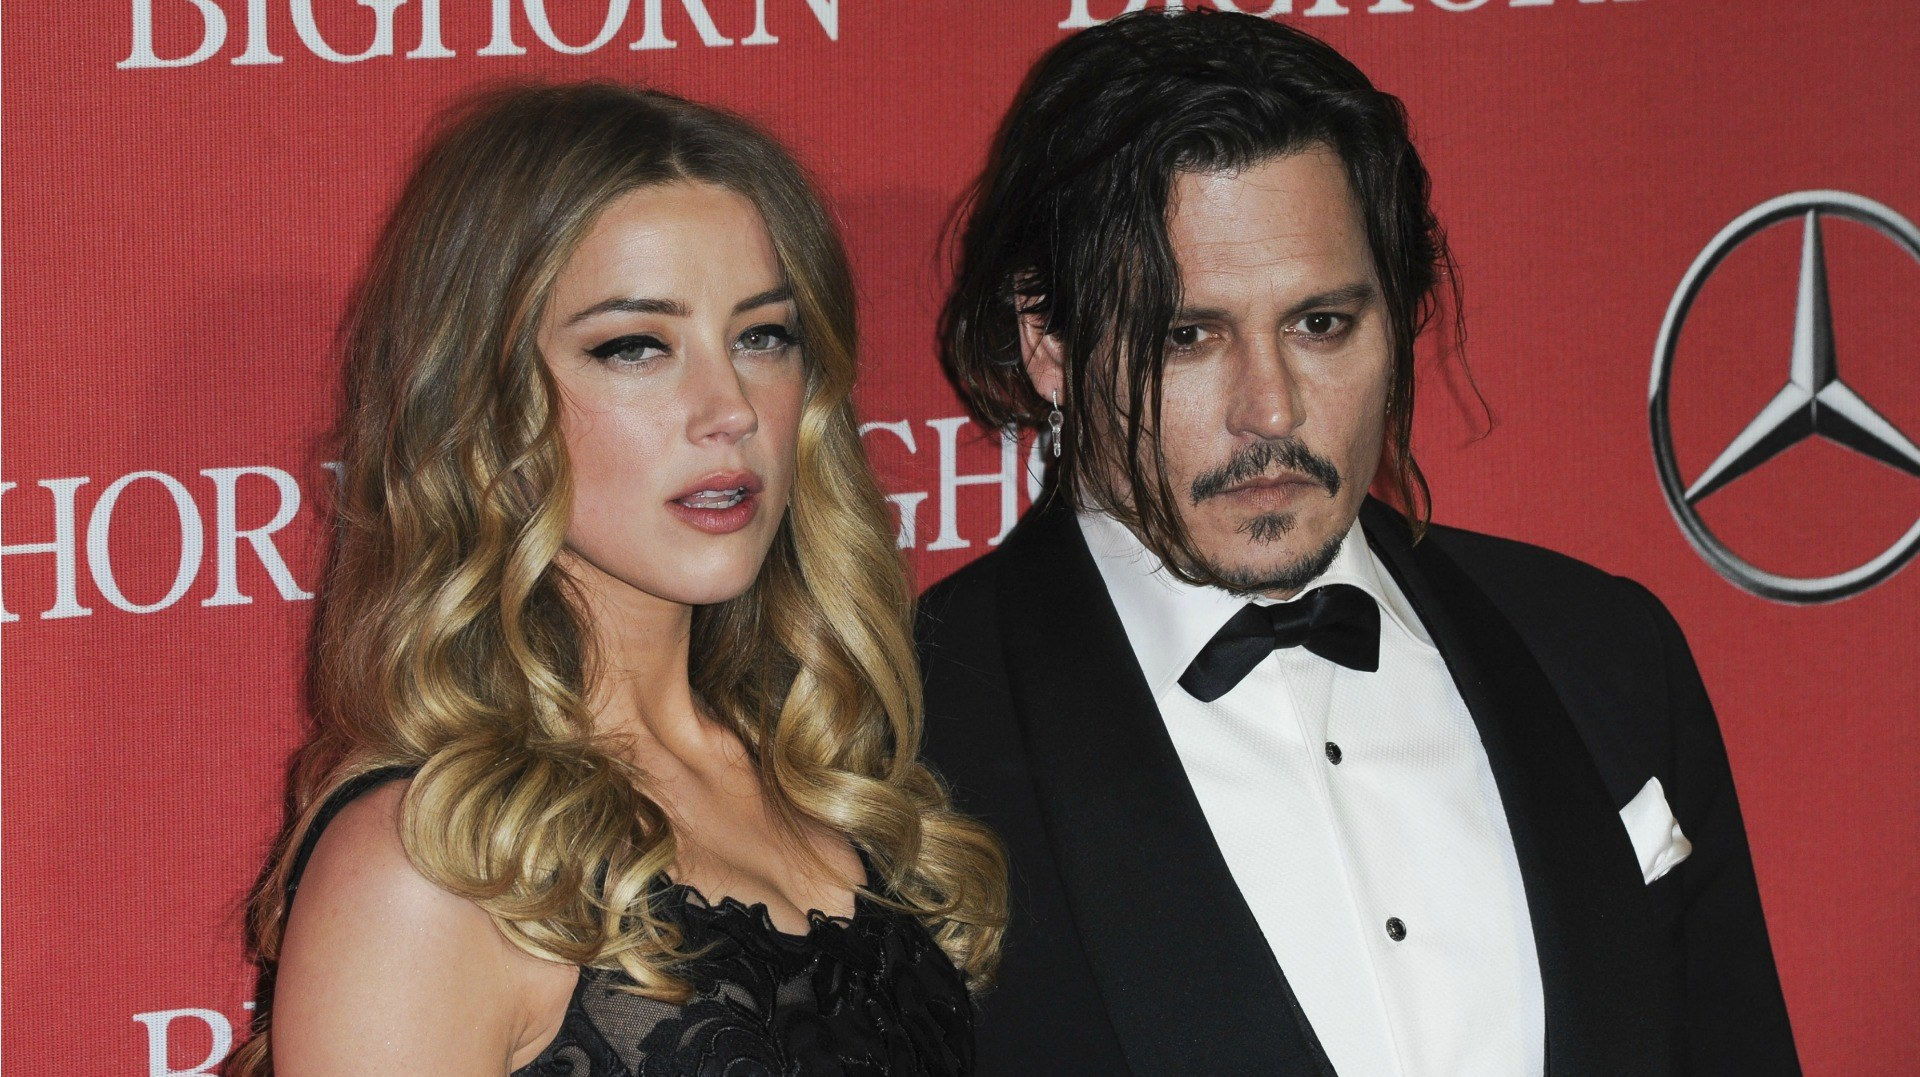 Amber Heard and Johnny Depp are officially single again – SheKnows